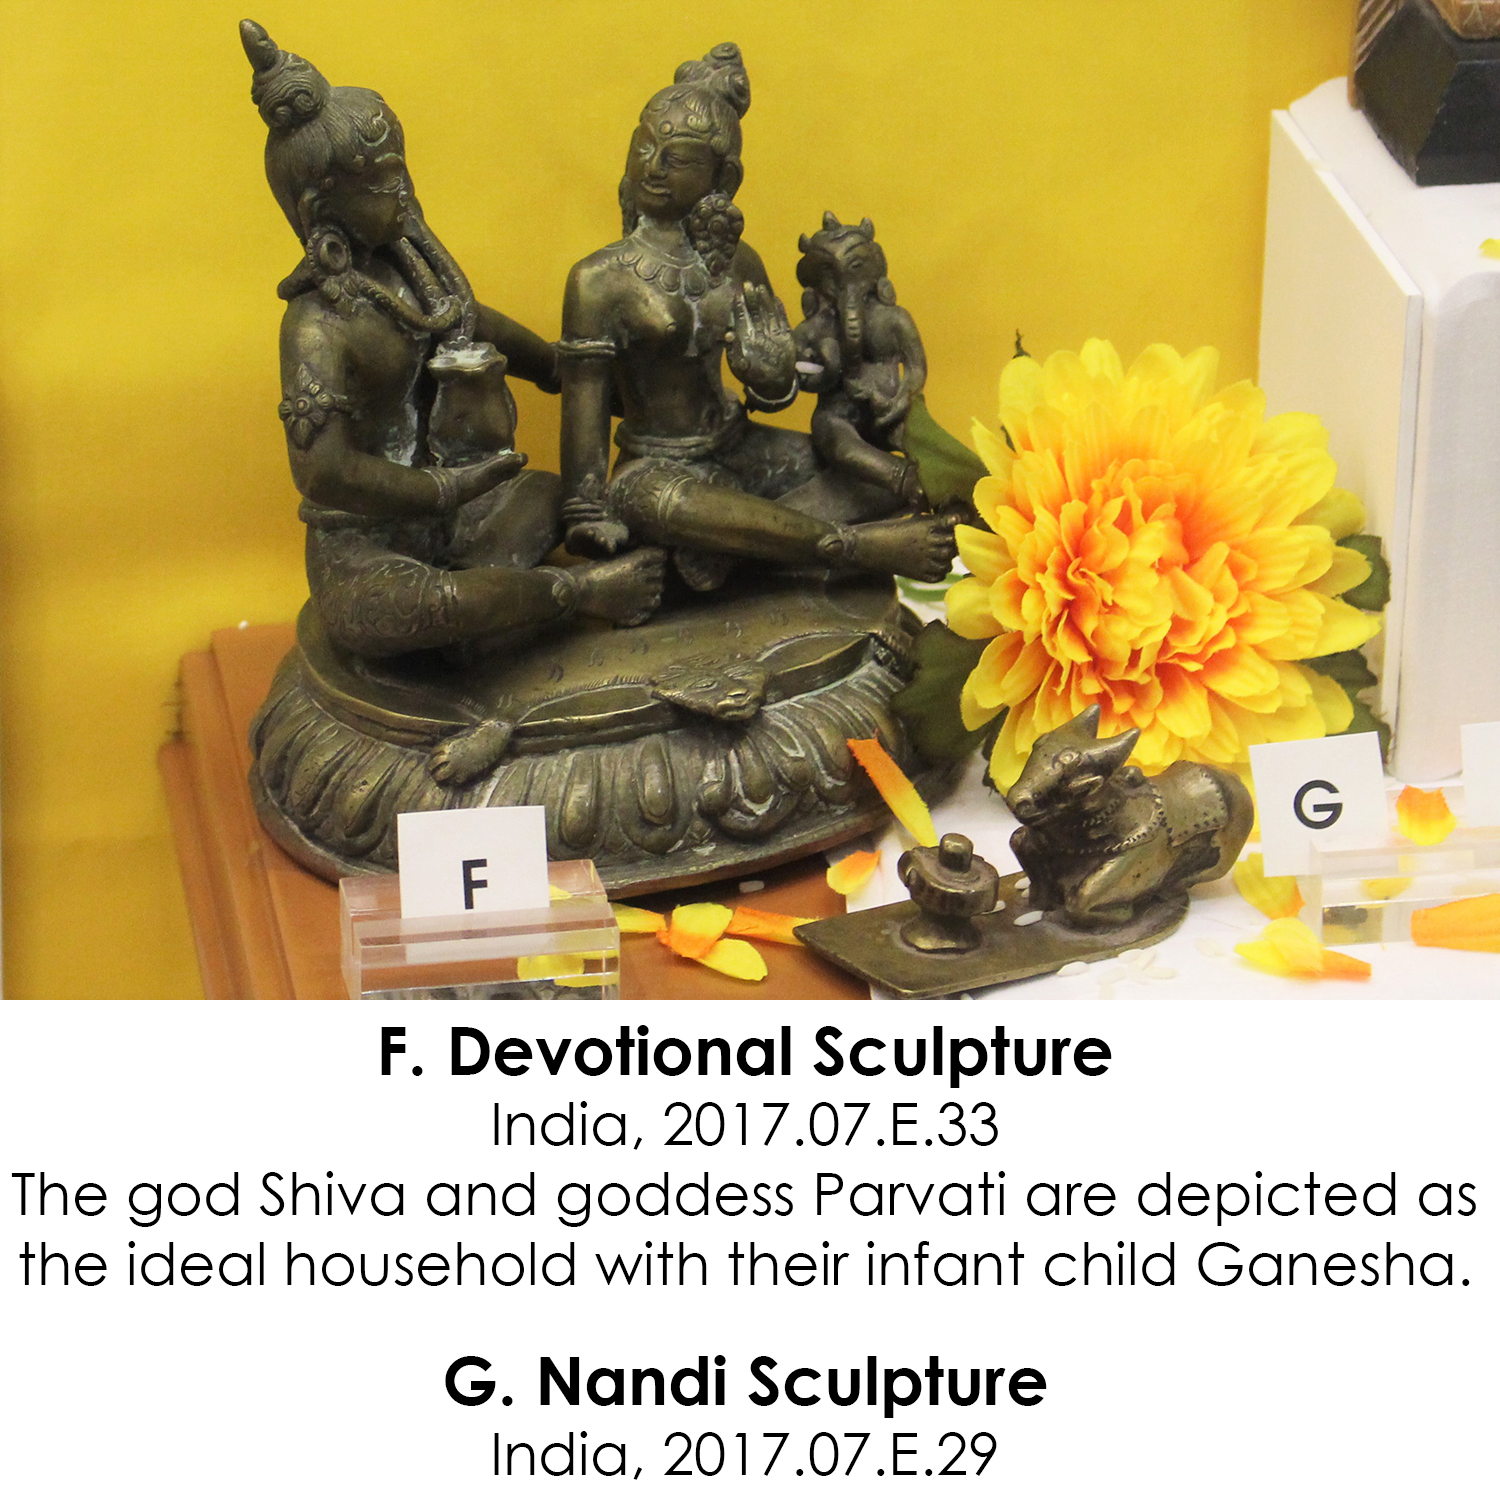 Devotional sculpture of Shiva and Parvati and Nandi sculpture from India